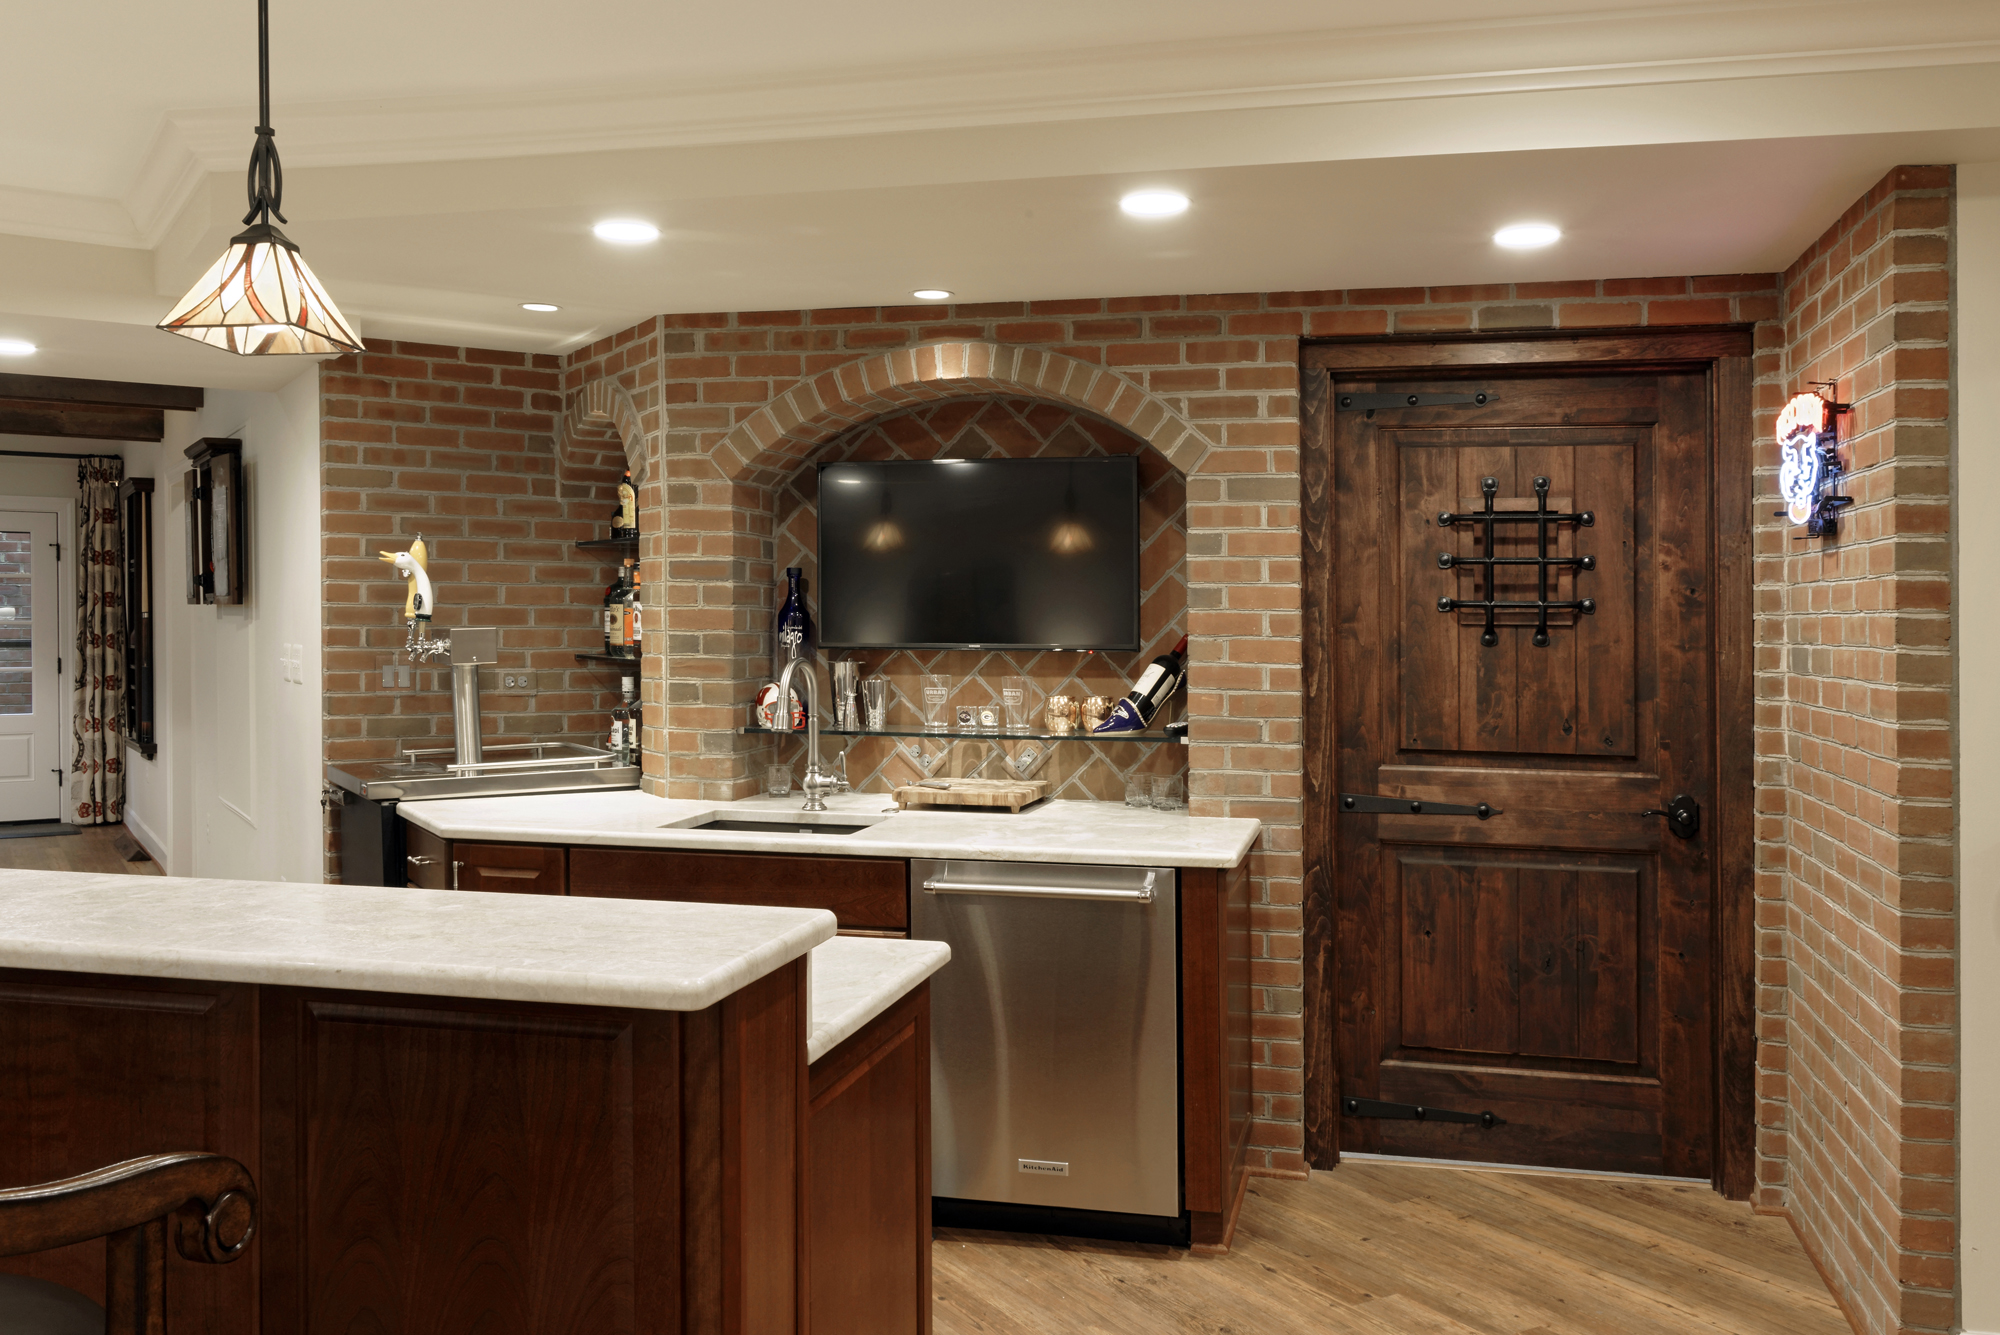 Basement Remodel In Mclean Perfect For Entertaining Bowa Wiring Strategically Placed Audio Visual To Ensure A Clean Look